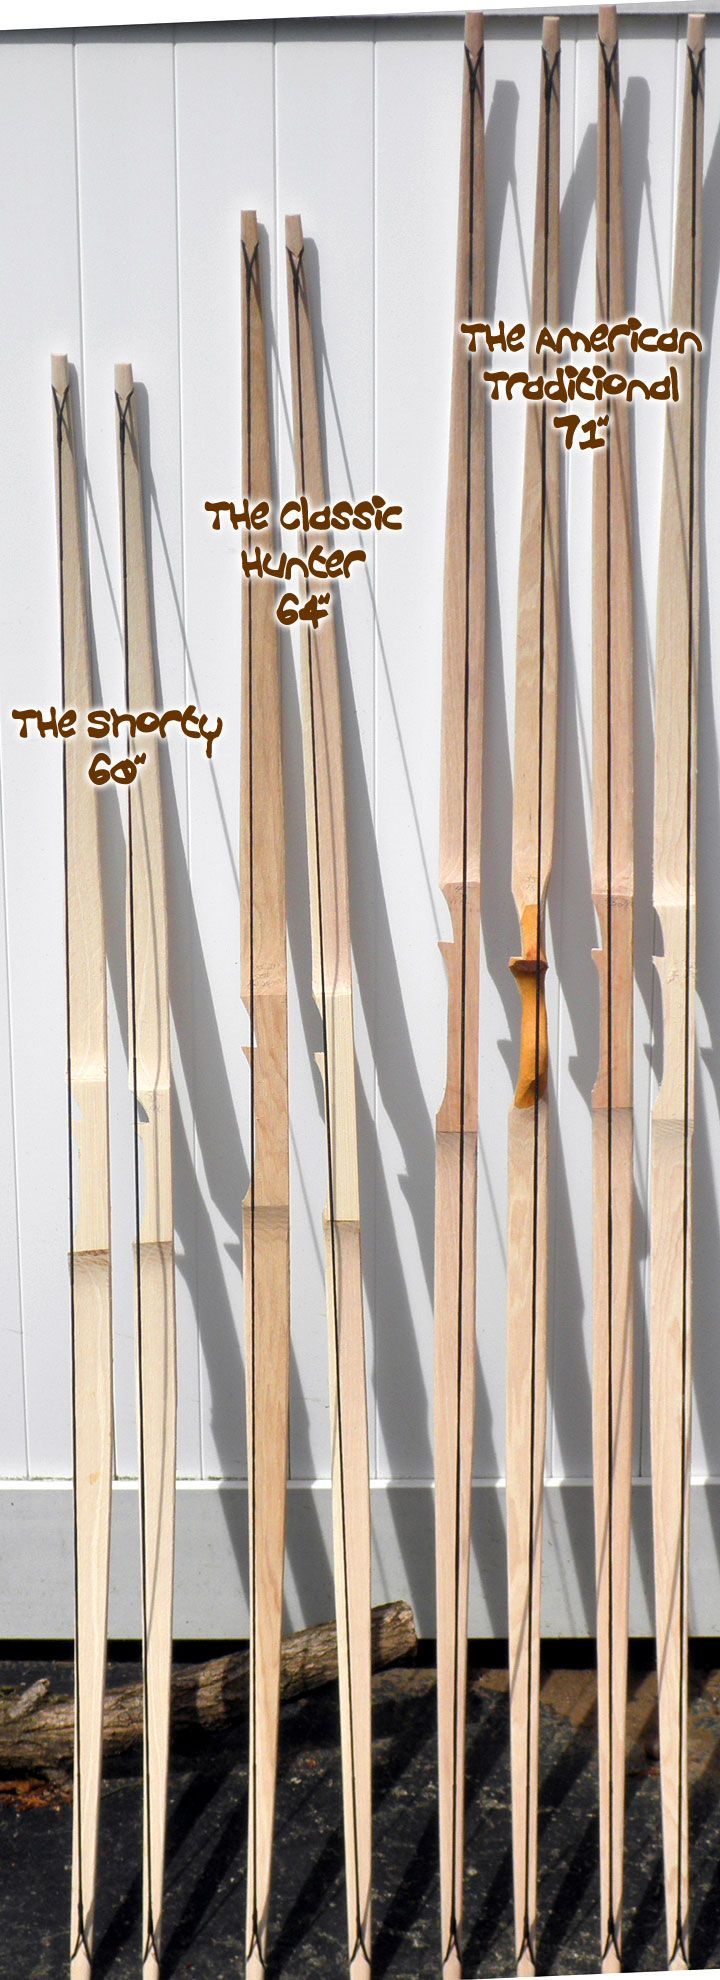 In Stock 50# The American Traditional Longbow 68 - $55.00 : G.I.Bow.com, The American Product!